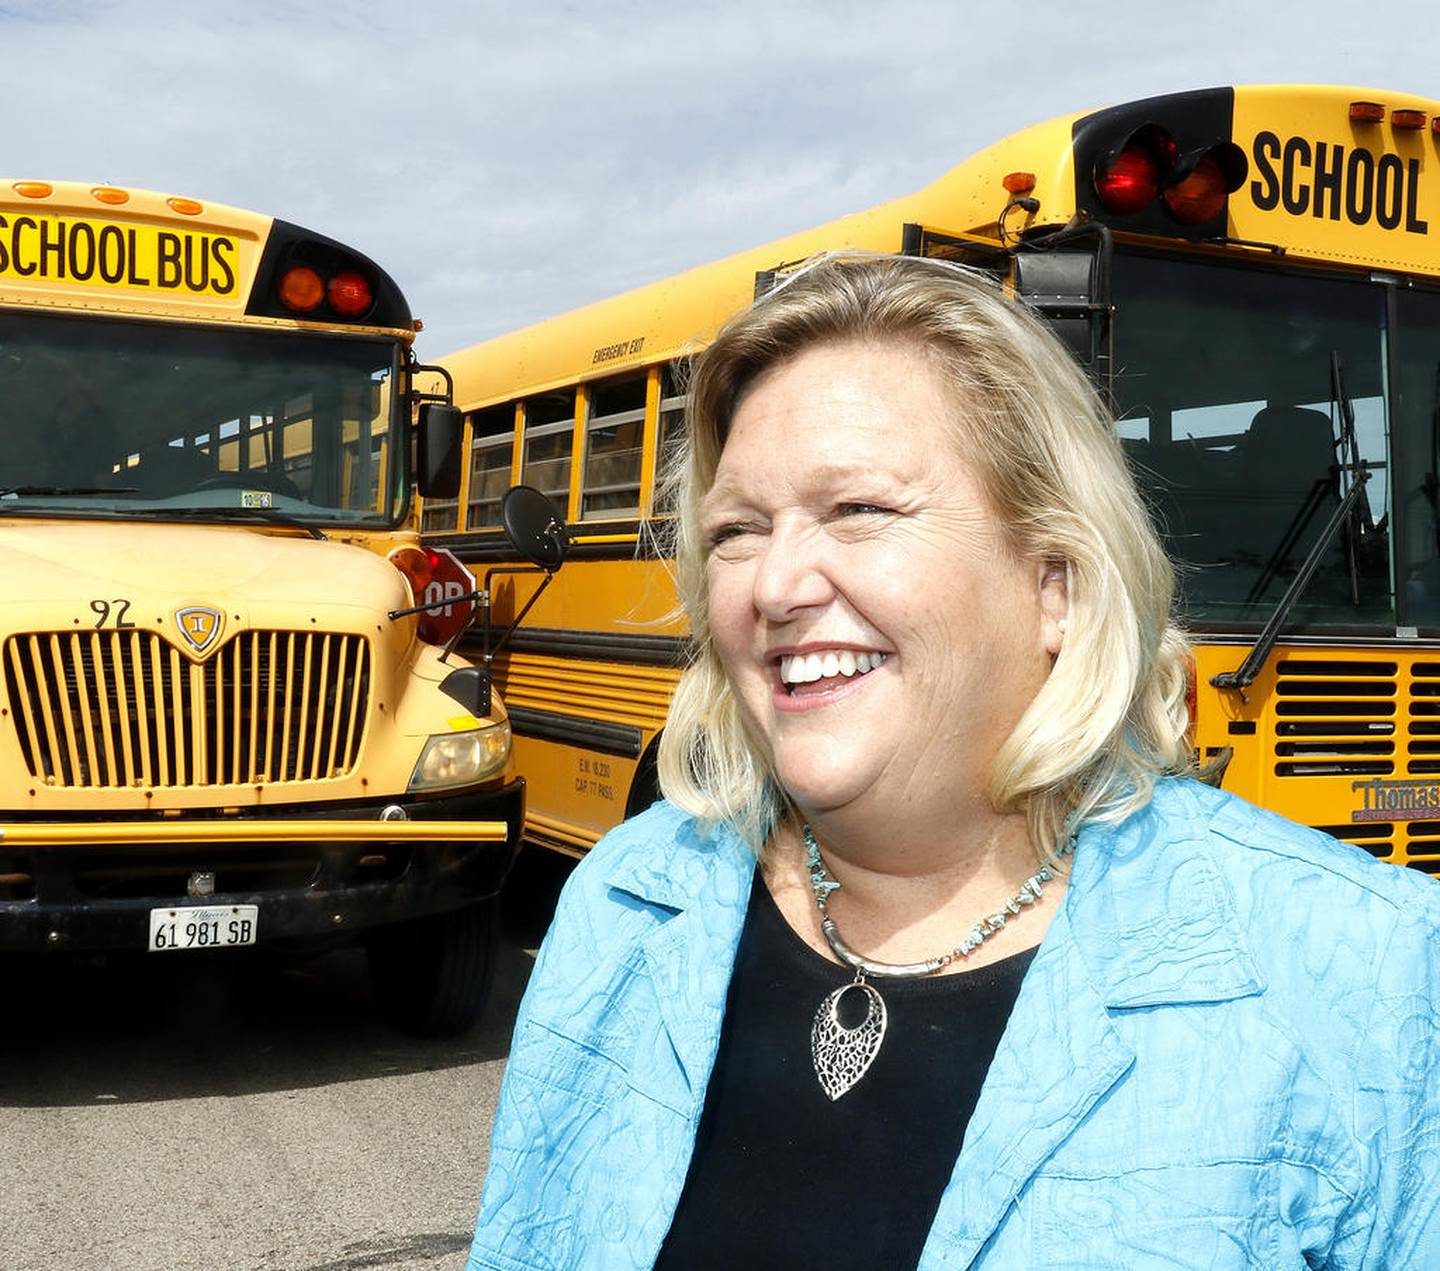 One way McHenry County Regional Superintendent of Schools Leslie Schermerhorn says schools can cut costs and improve education opportunities for students is through consolidation.